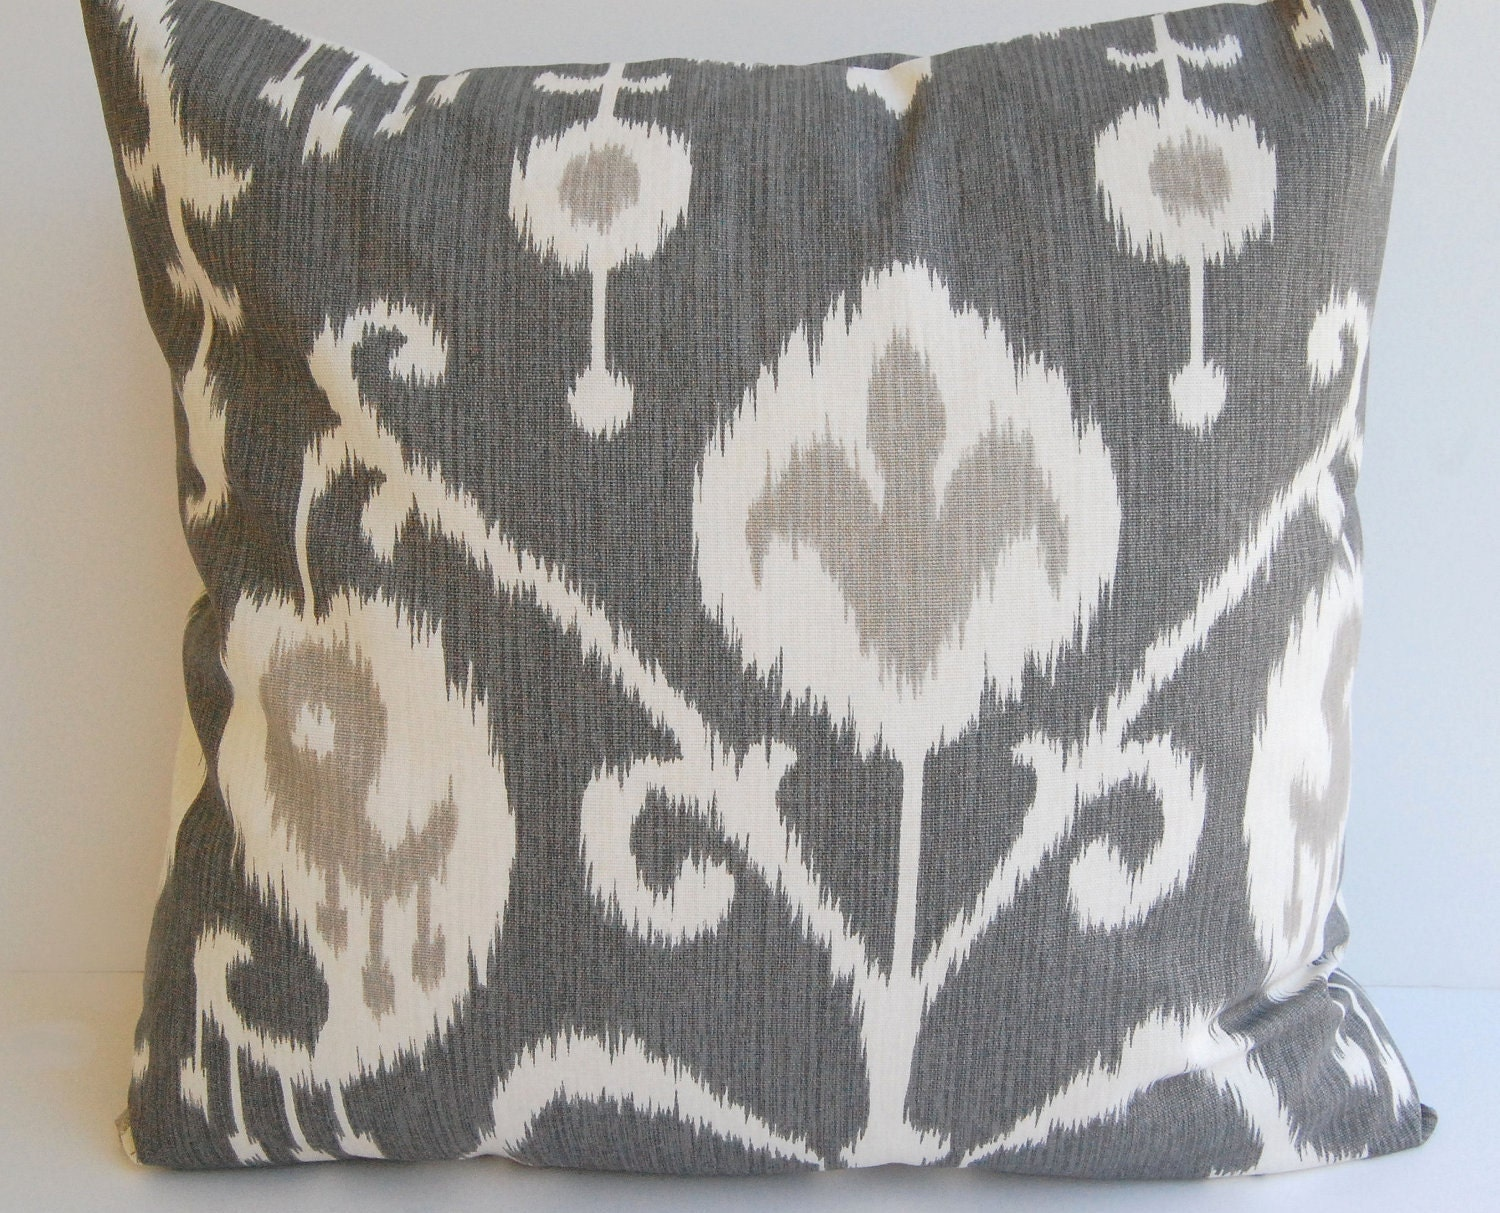 Ikat Throw Pillow Covers : Ikat decorative throw pillow cover one 16 x 16 by ThePillowPeople